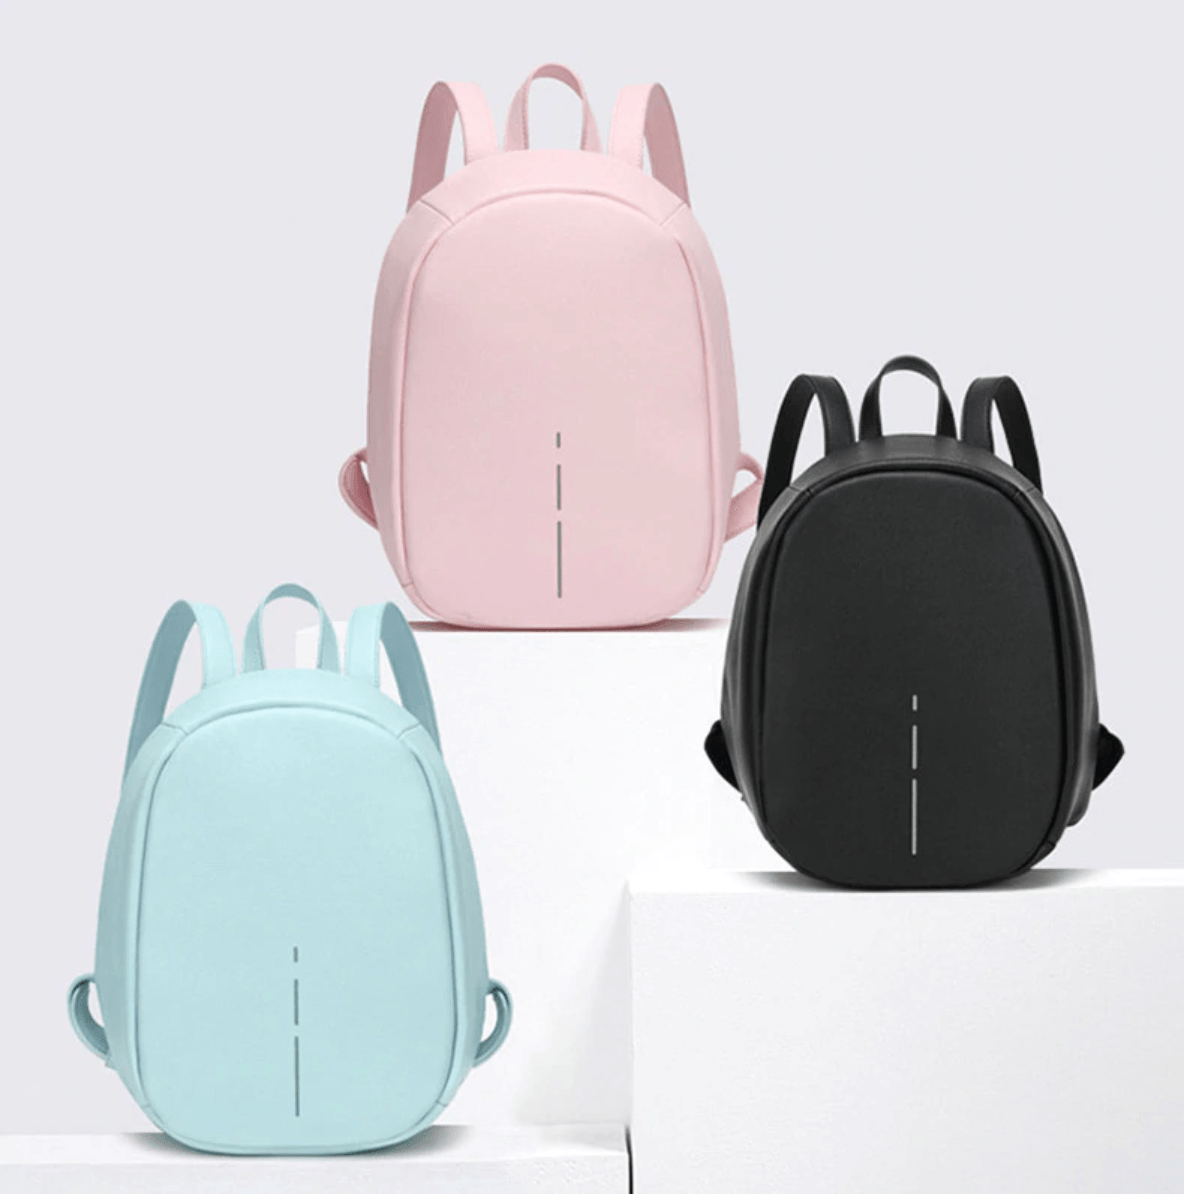 BOBBY AntiTheft Backpack for Women